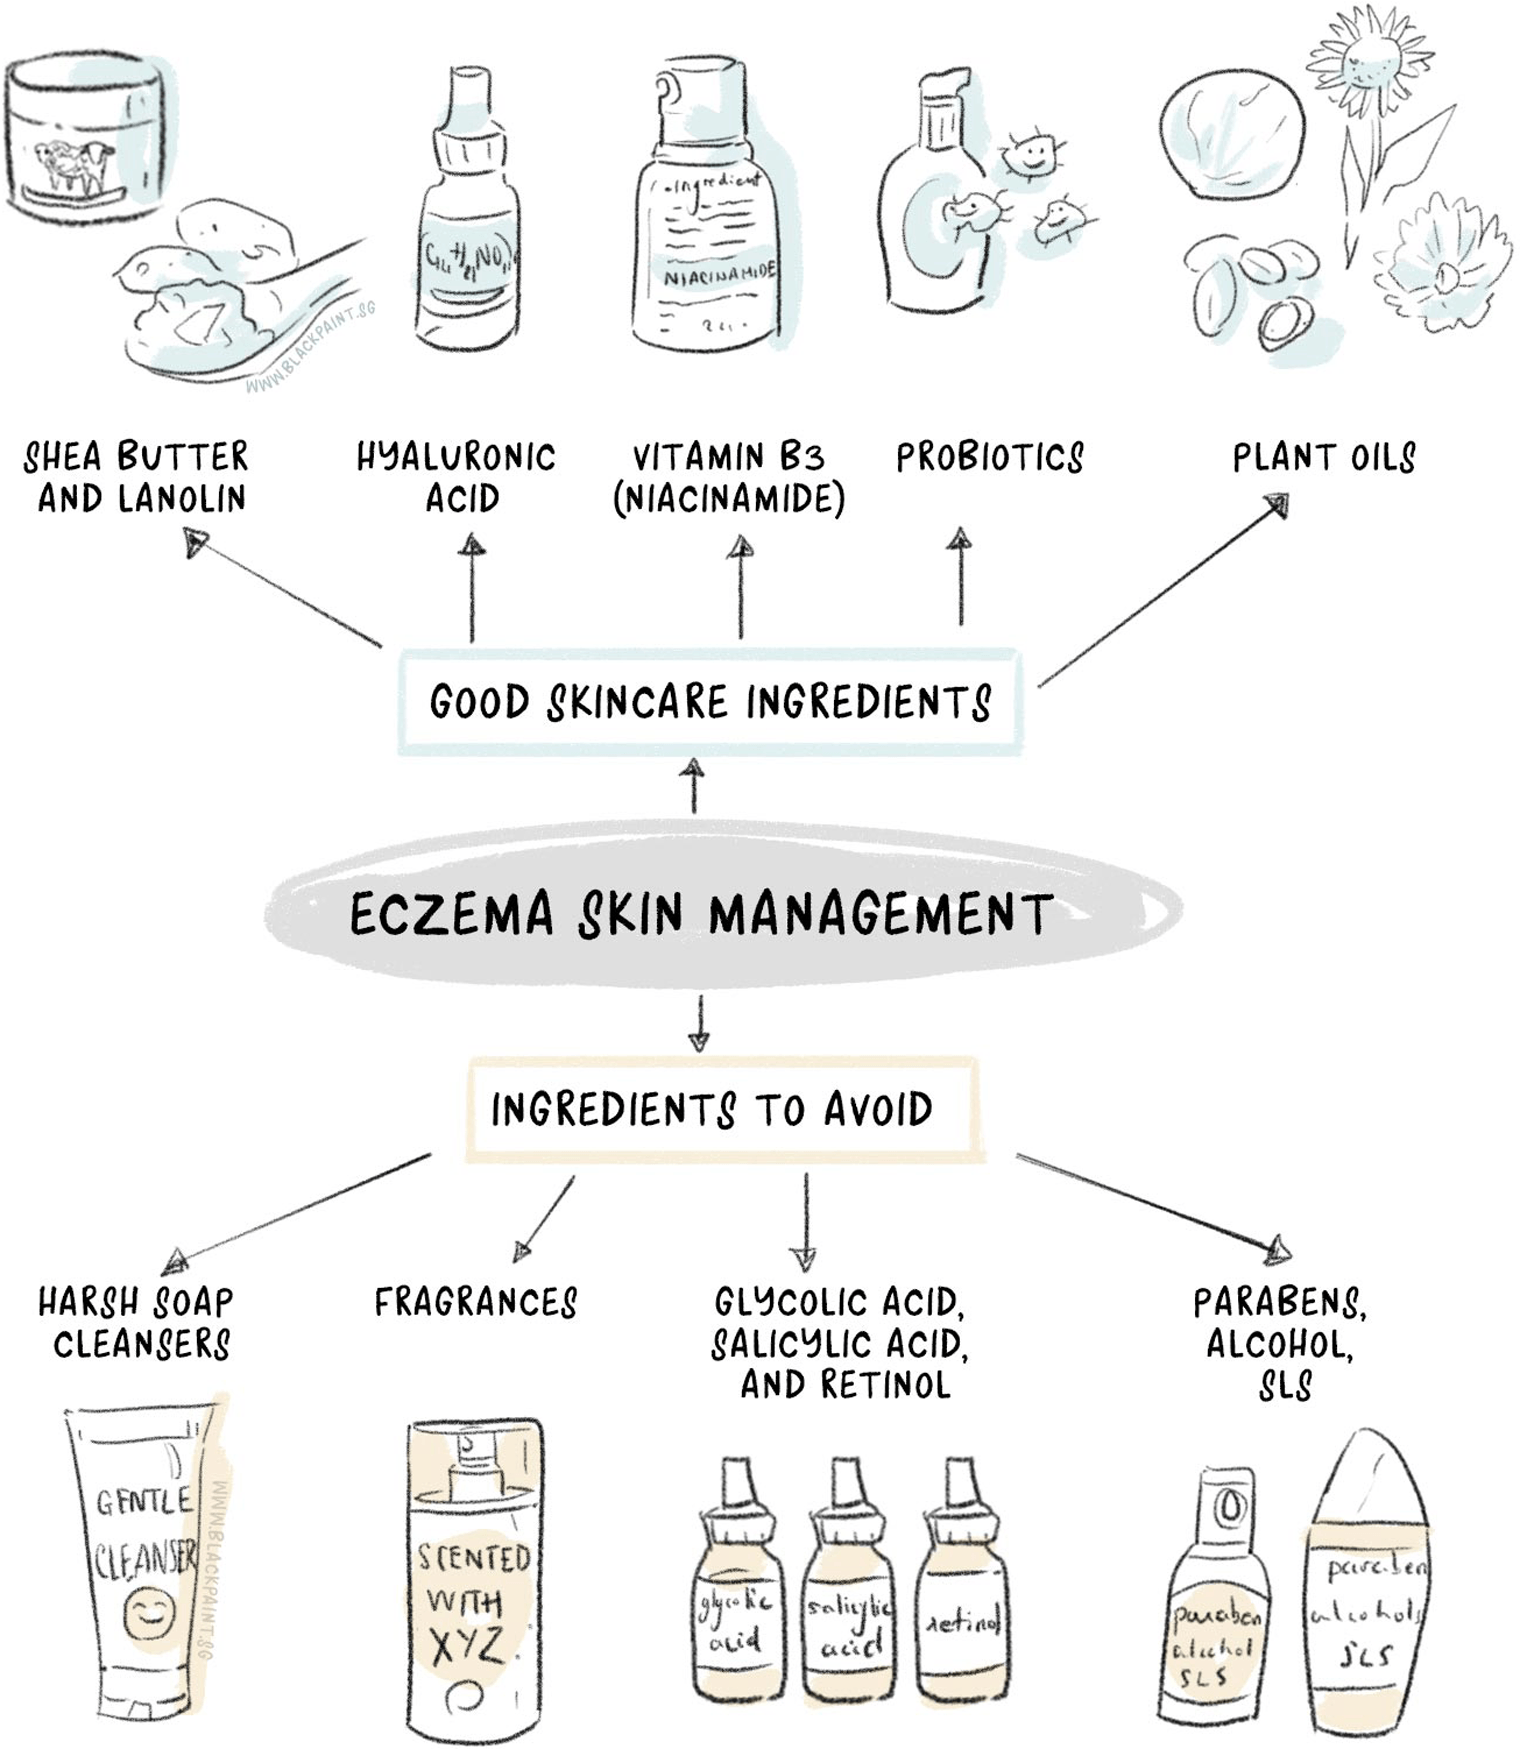 illustration of being mindful of your choices of skincare products if eczema is a problem for you.